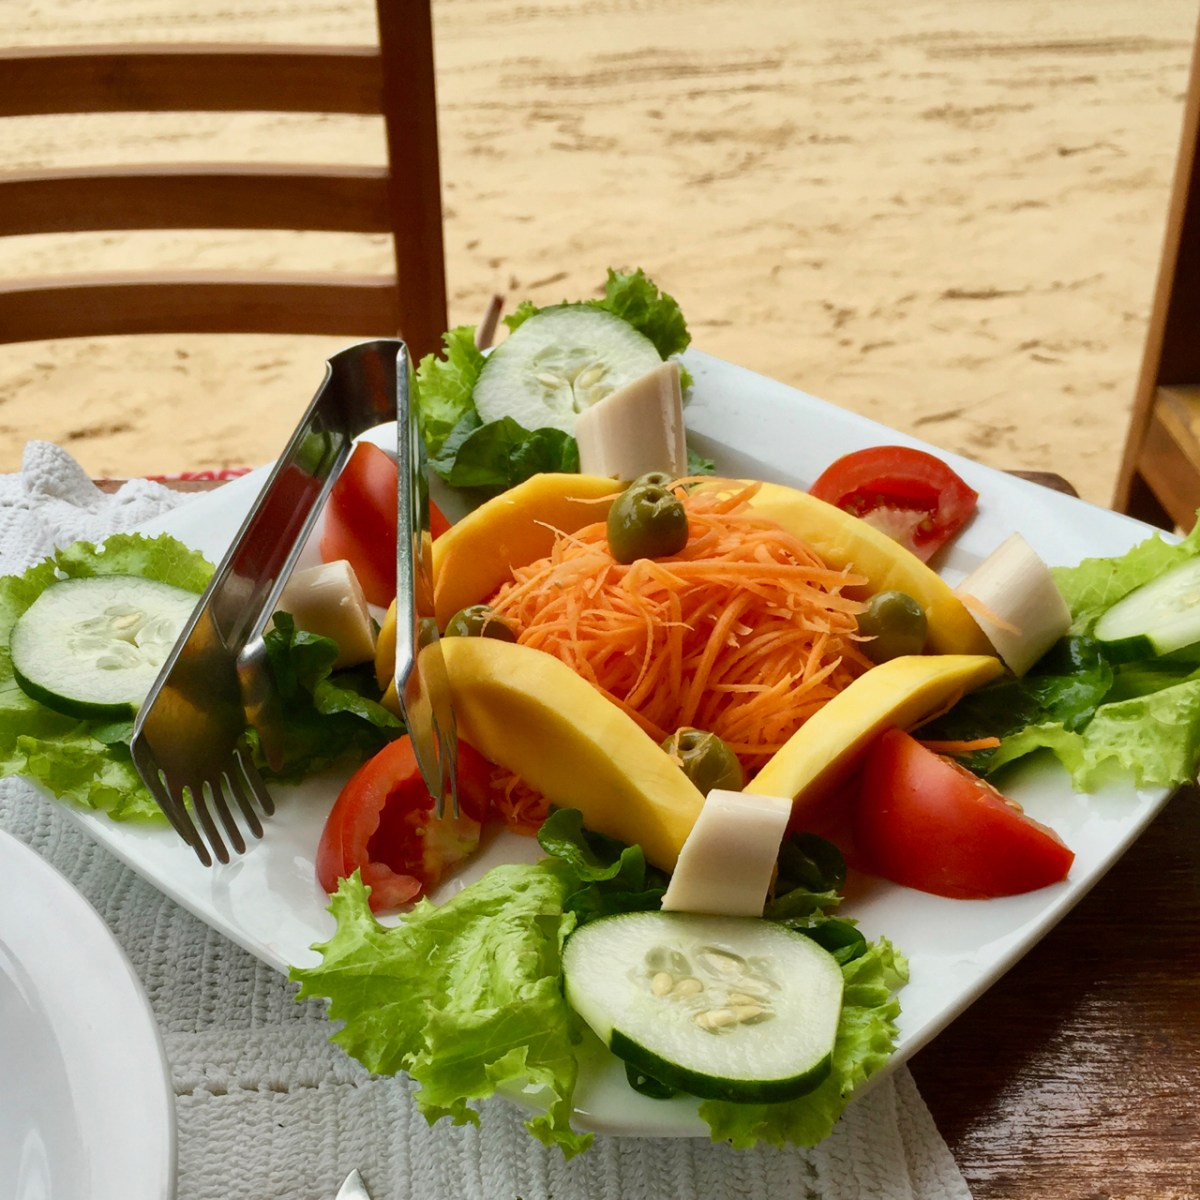 vegan-salad-with-palm-hearts-jericoacoara-ceara-brasil-veglibrary-vegetarian_meal